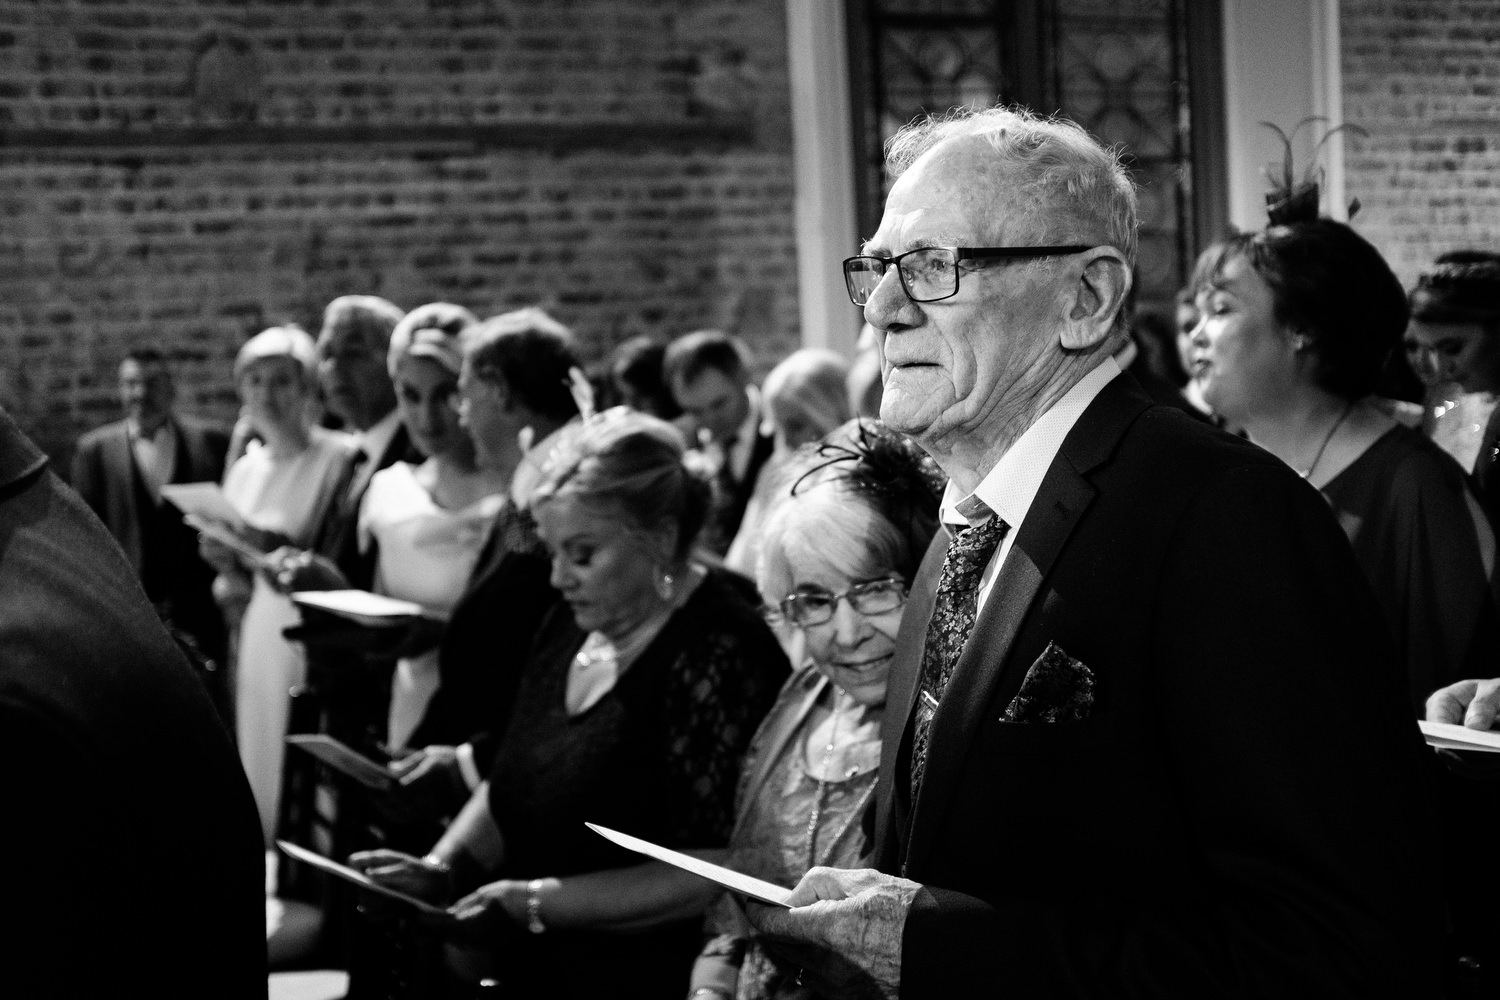 dmp0298_dublin_alley_photography_david_mcclelland_ceremony_humanist_documentary_theatre_smock_wedding_photographer